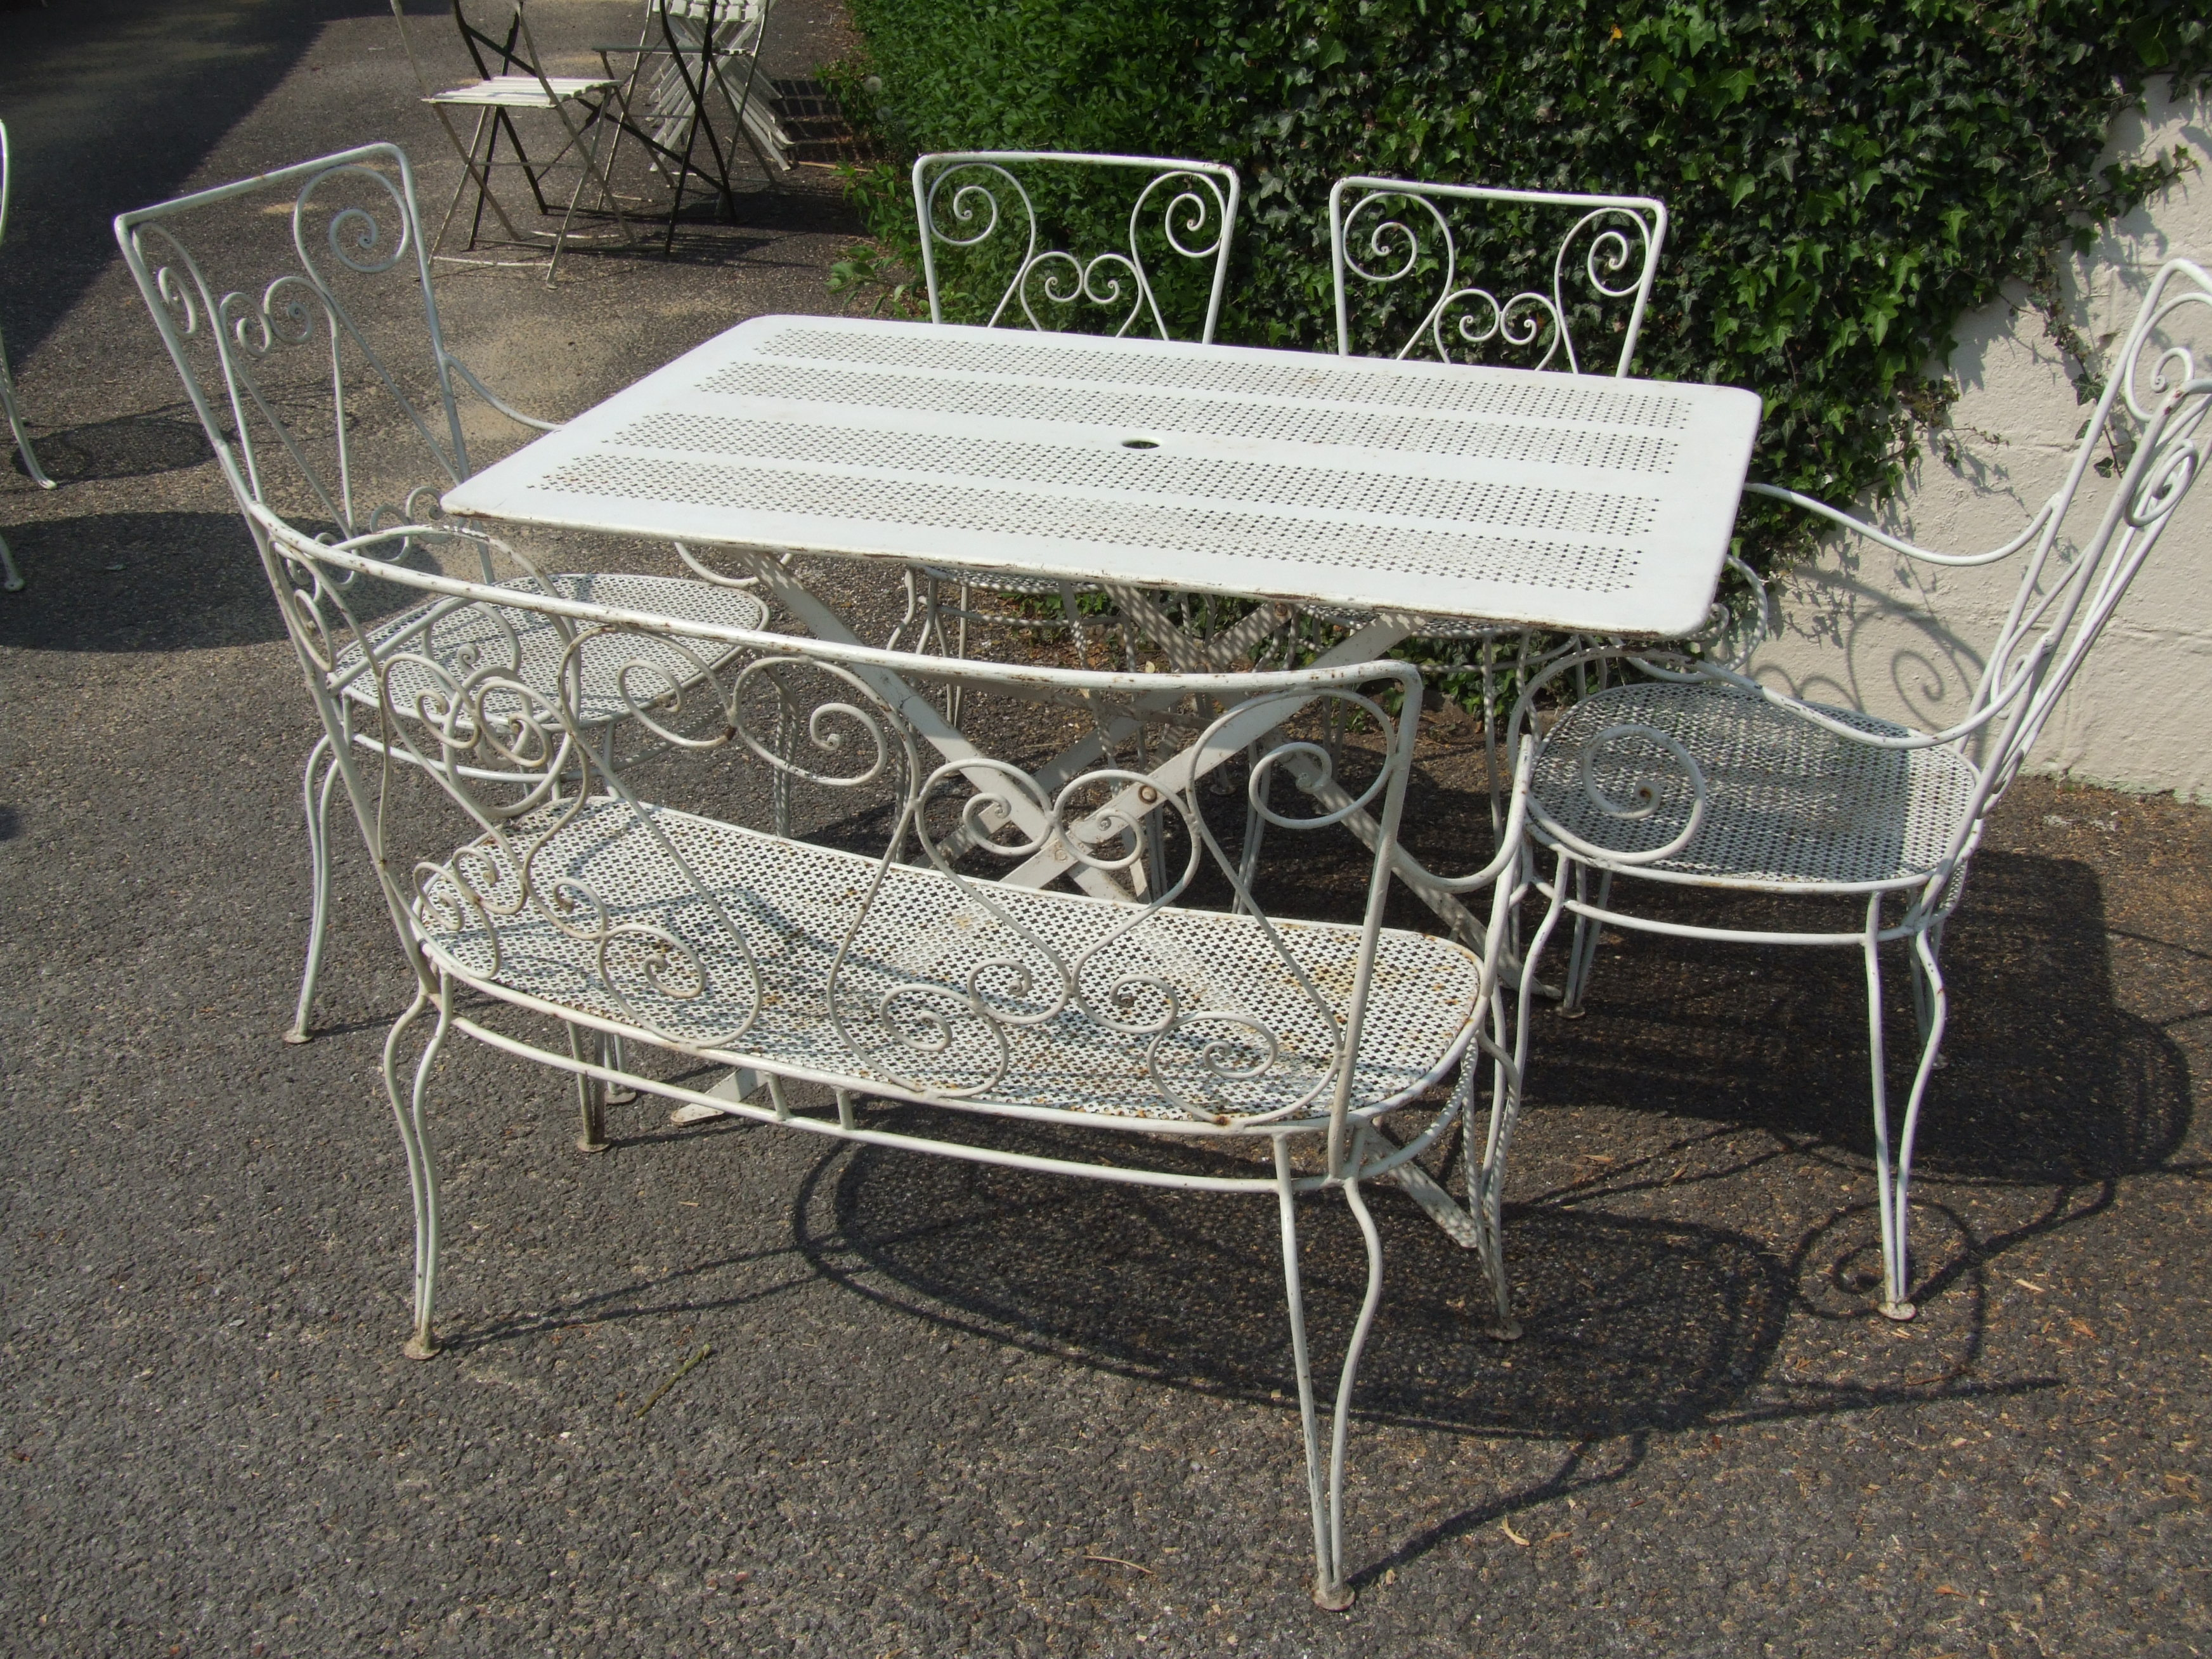 G089 vintage french folding garden table la belle toffe French metal garden furniture